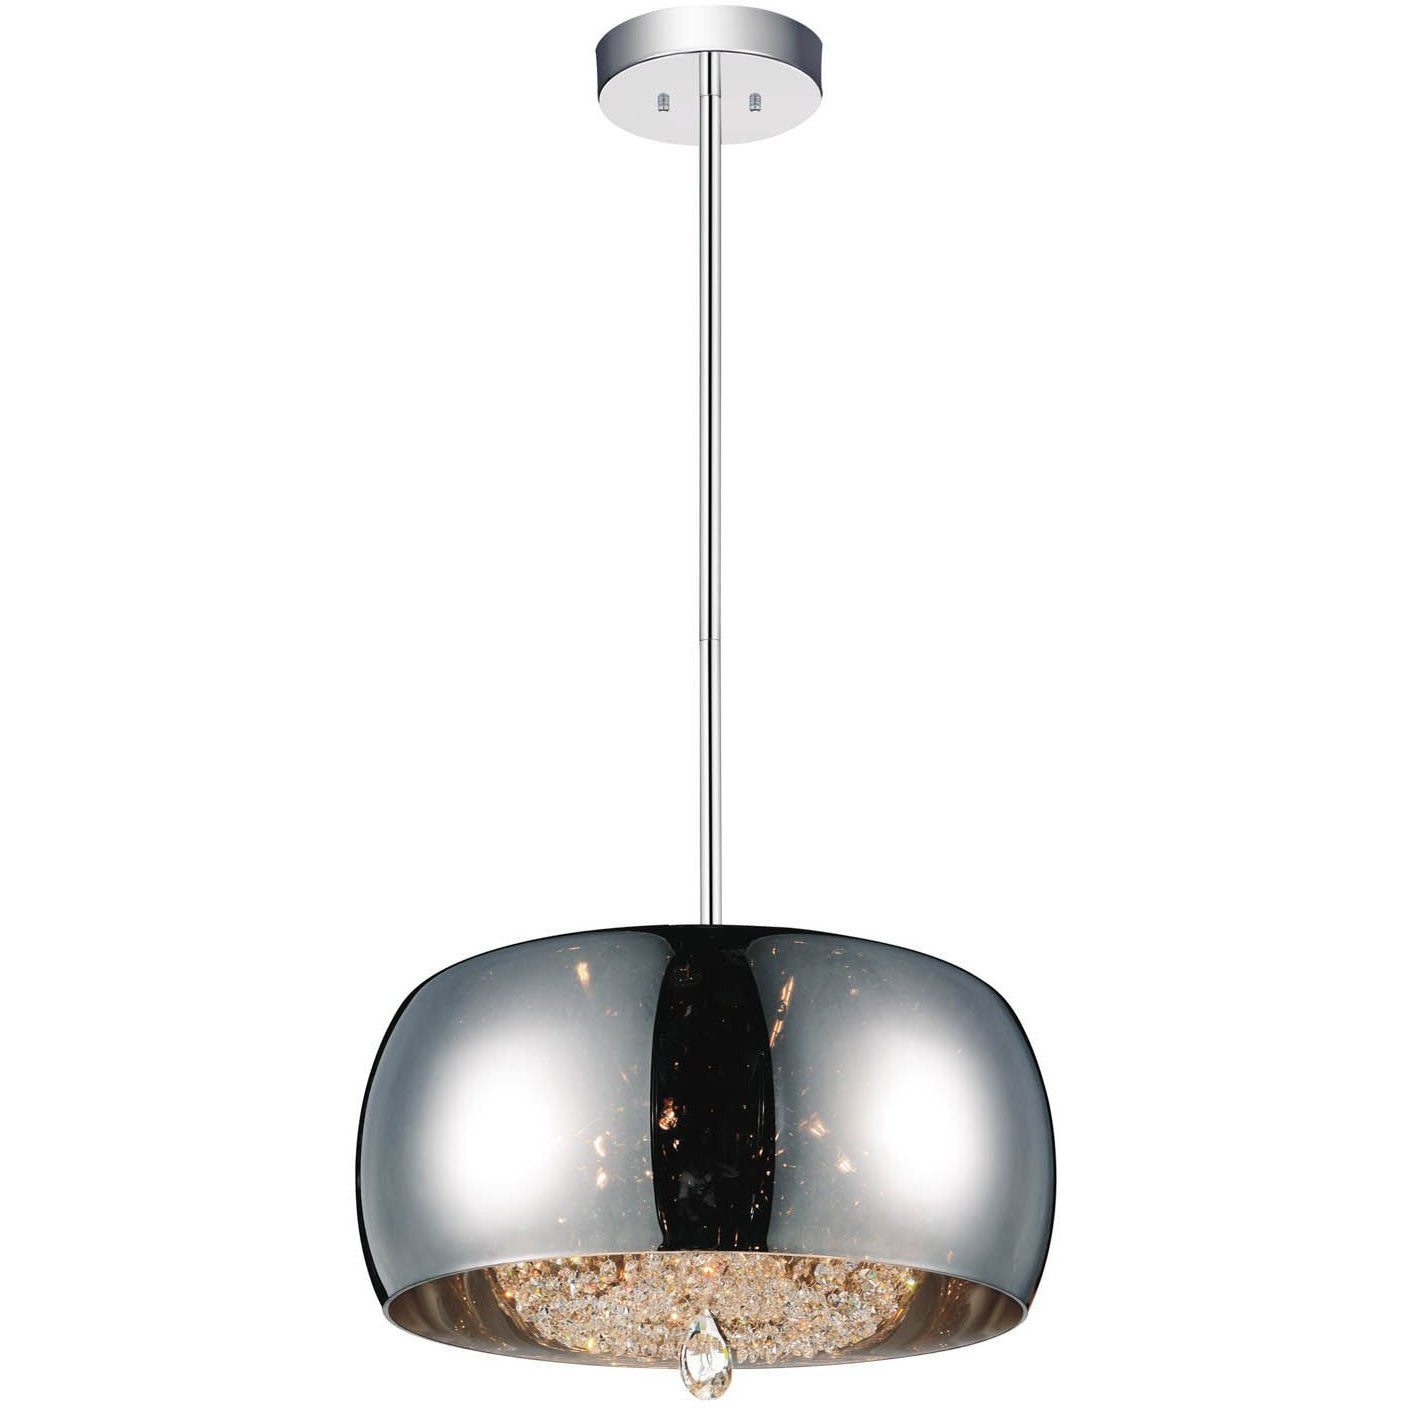 CWI Lighting Chandeliers Chrome Movement 6 Light Drum Shade Chandelier with Chrome finish by CWI Lighting 5608P20C-E (Smoke)